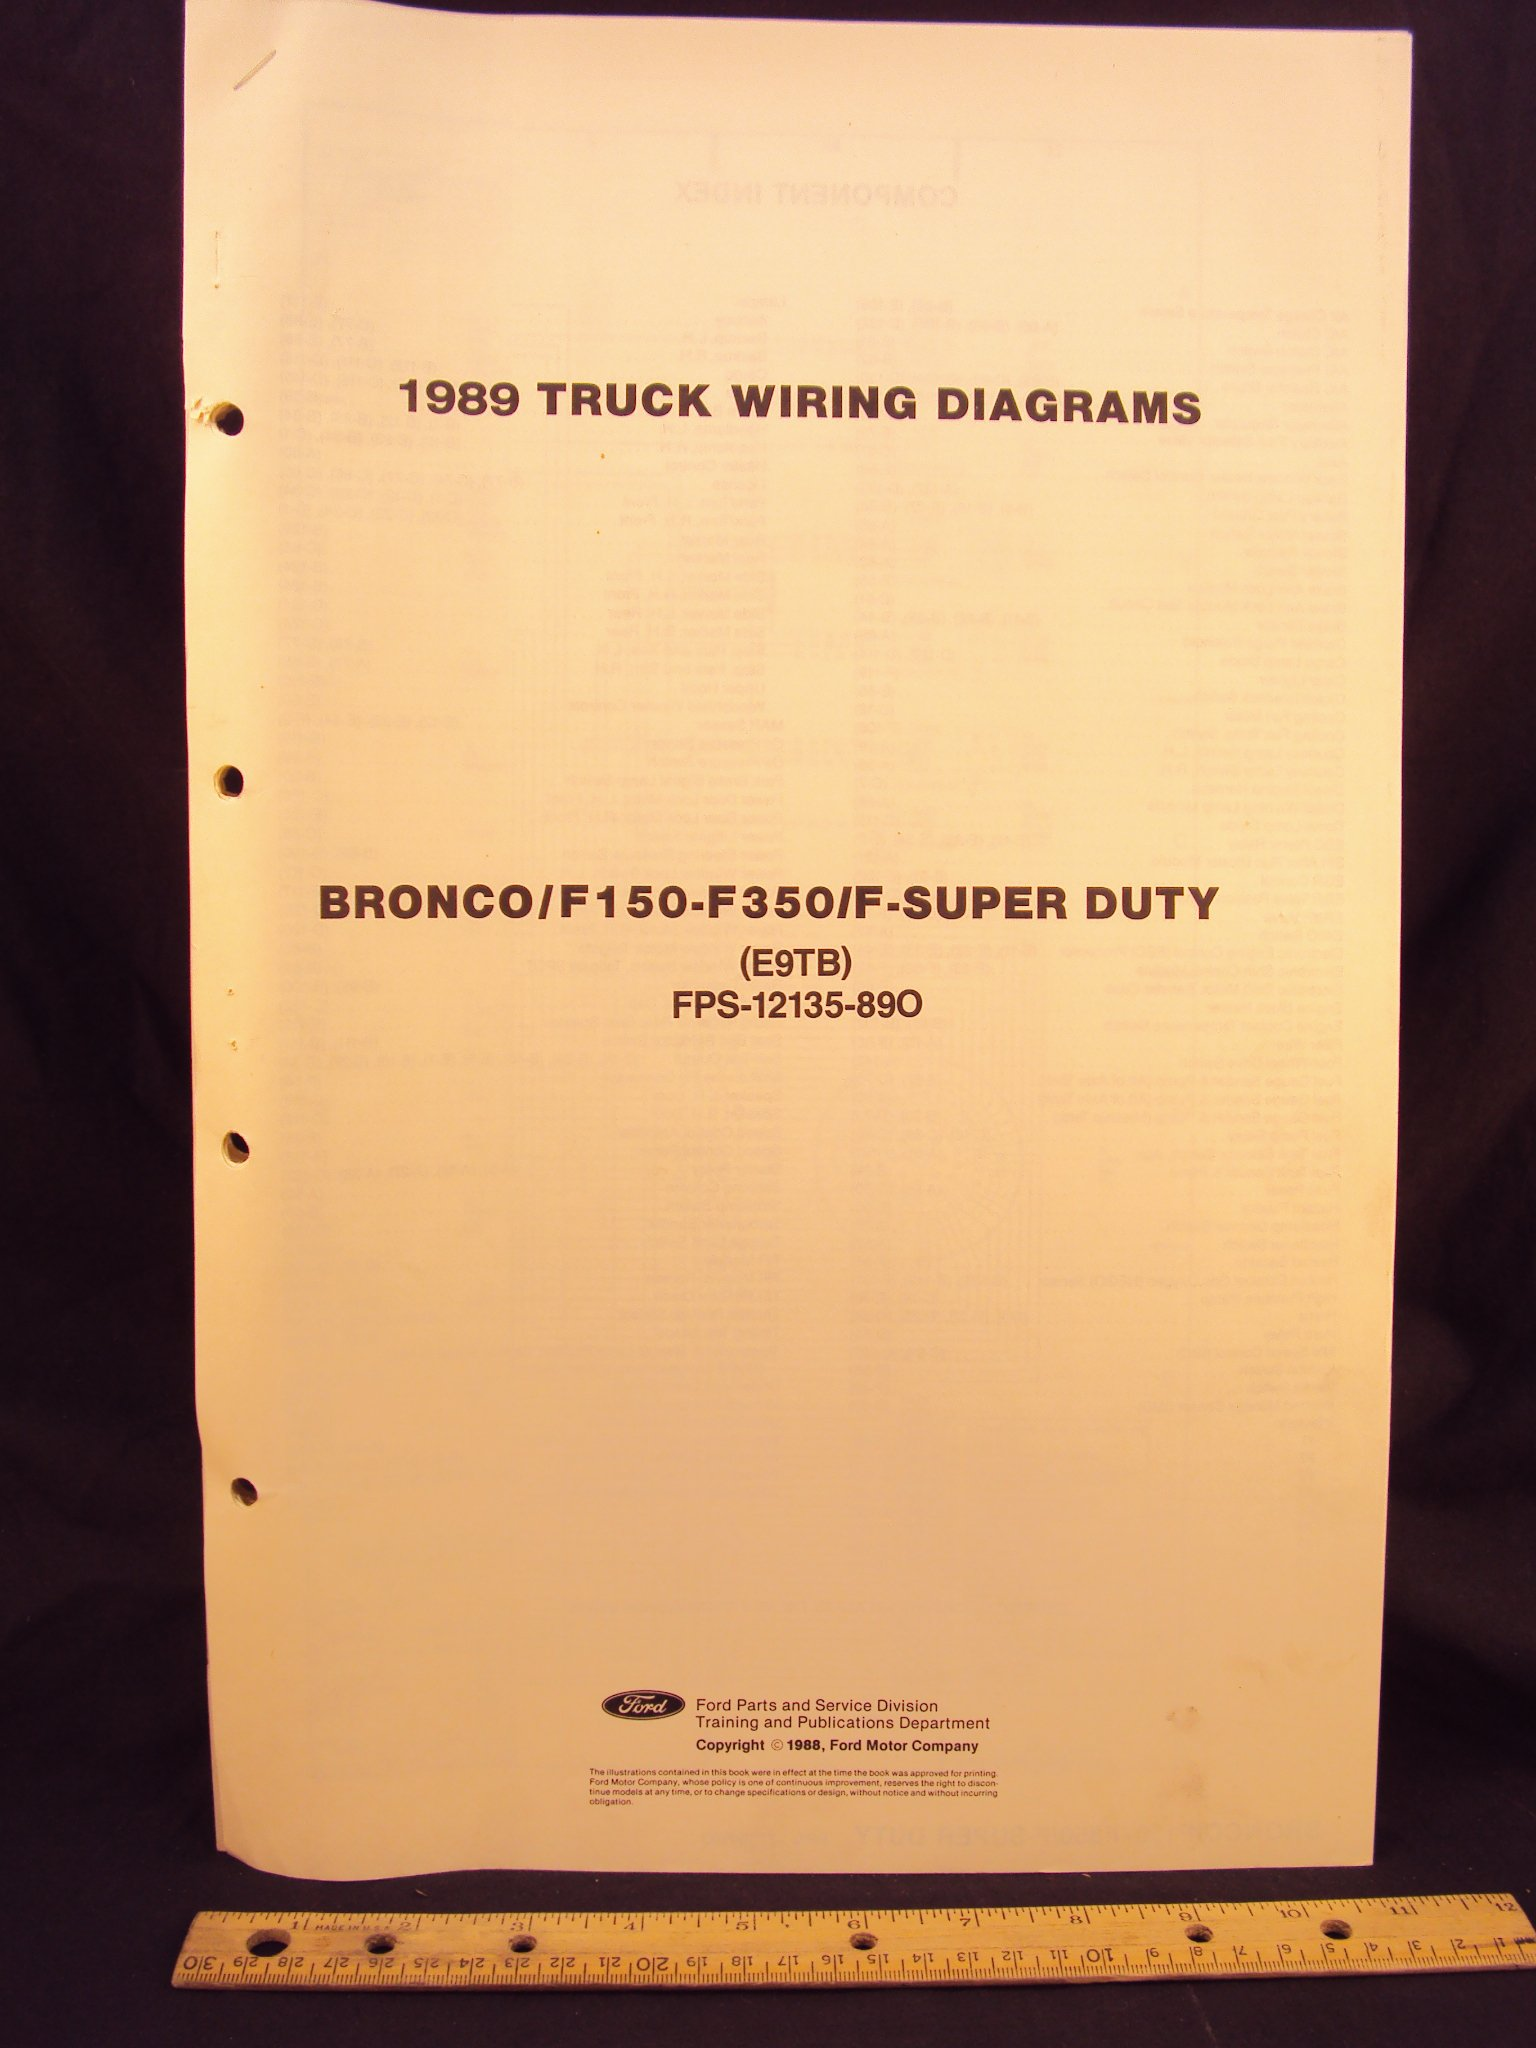 [ANLQ_8698]  1989 FORD F-150, F250, F350 Series Truck, Bronco, & Super Duty Truck  Electrical Wiring Diagrams / Schematics: Ford Motor Company: Amazon.com:  Books | 1989 F150 Wiring Diagram |  | Amazon.com